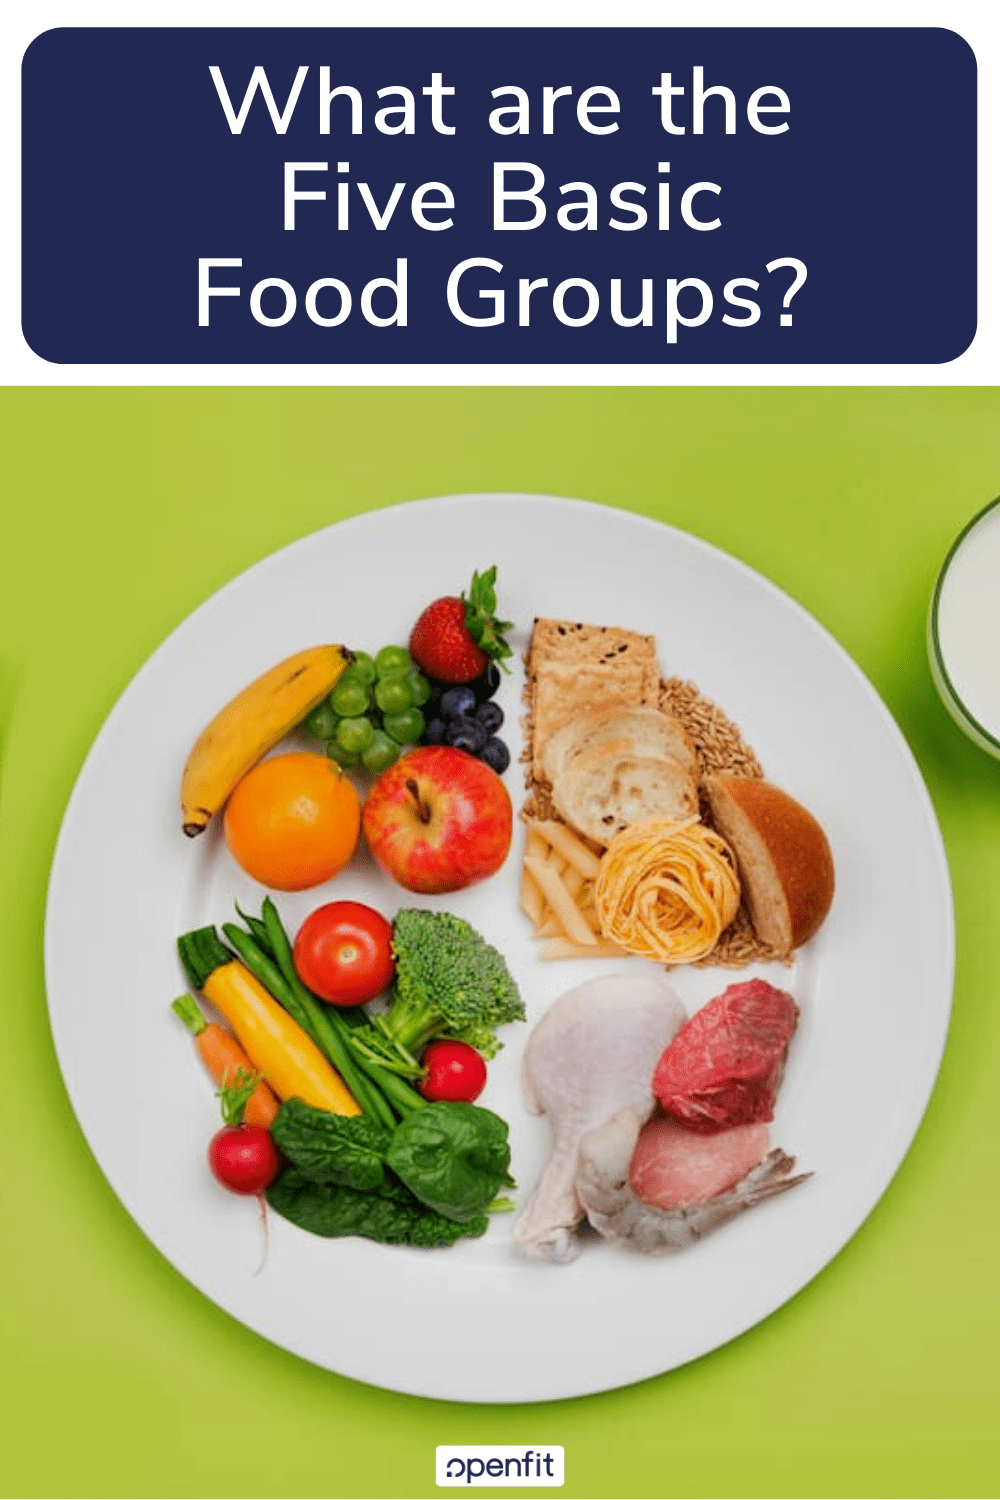 five basic food groups pin image